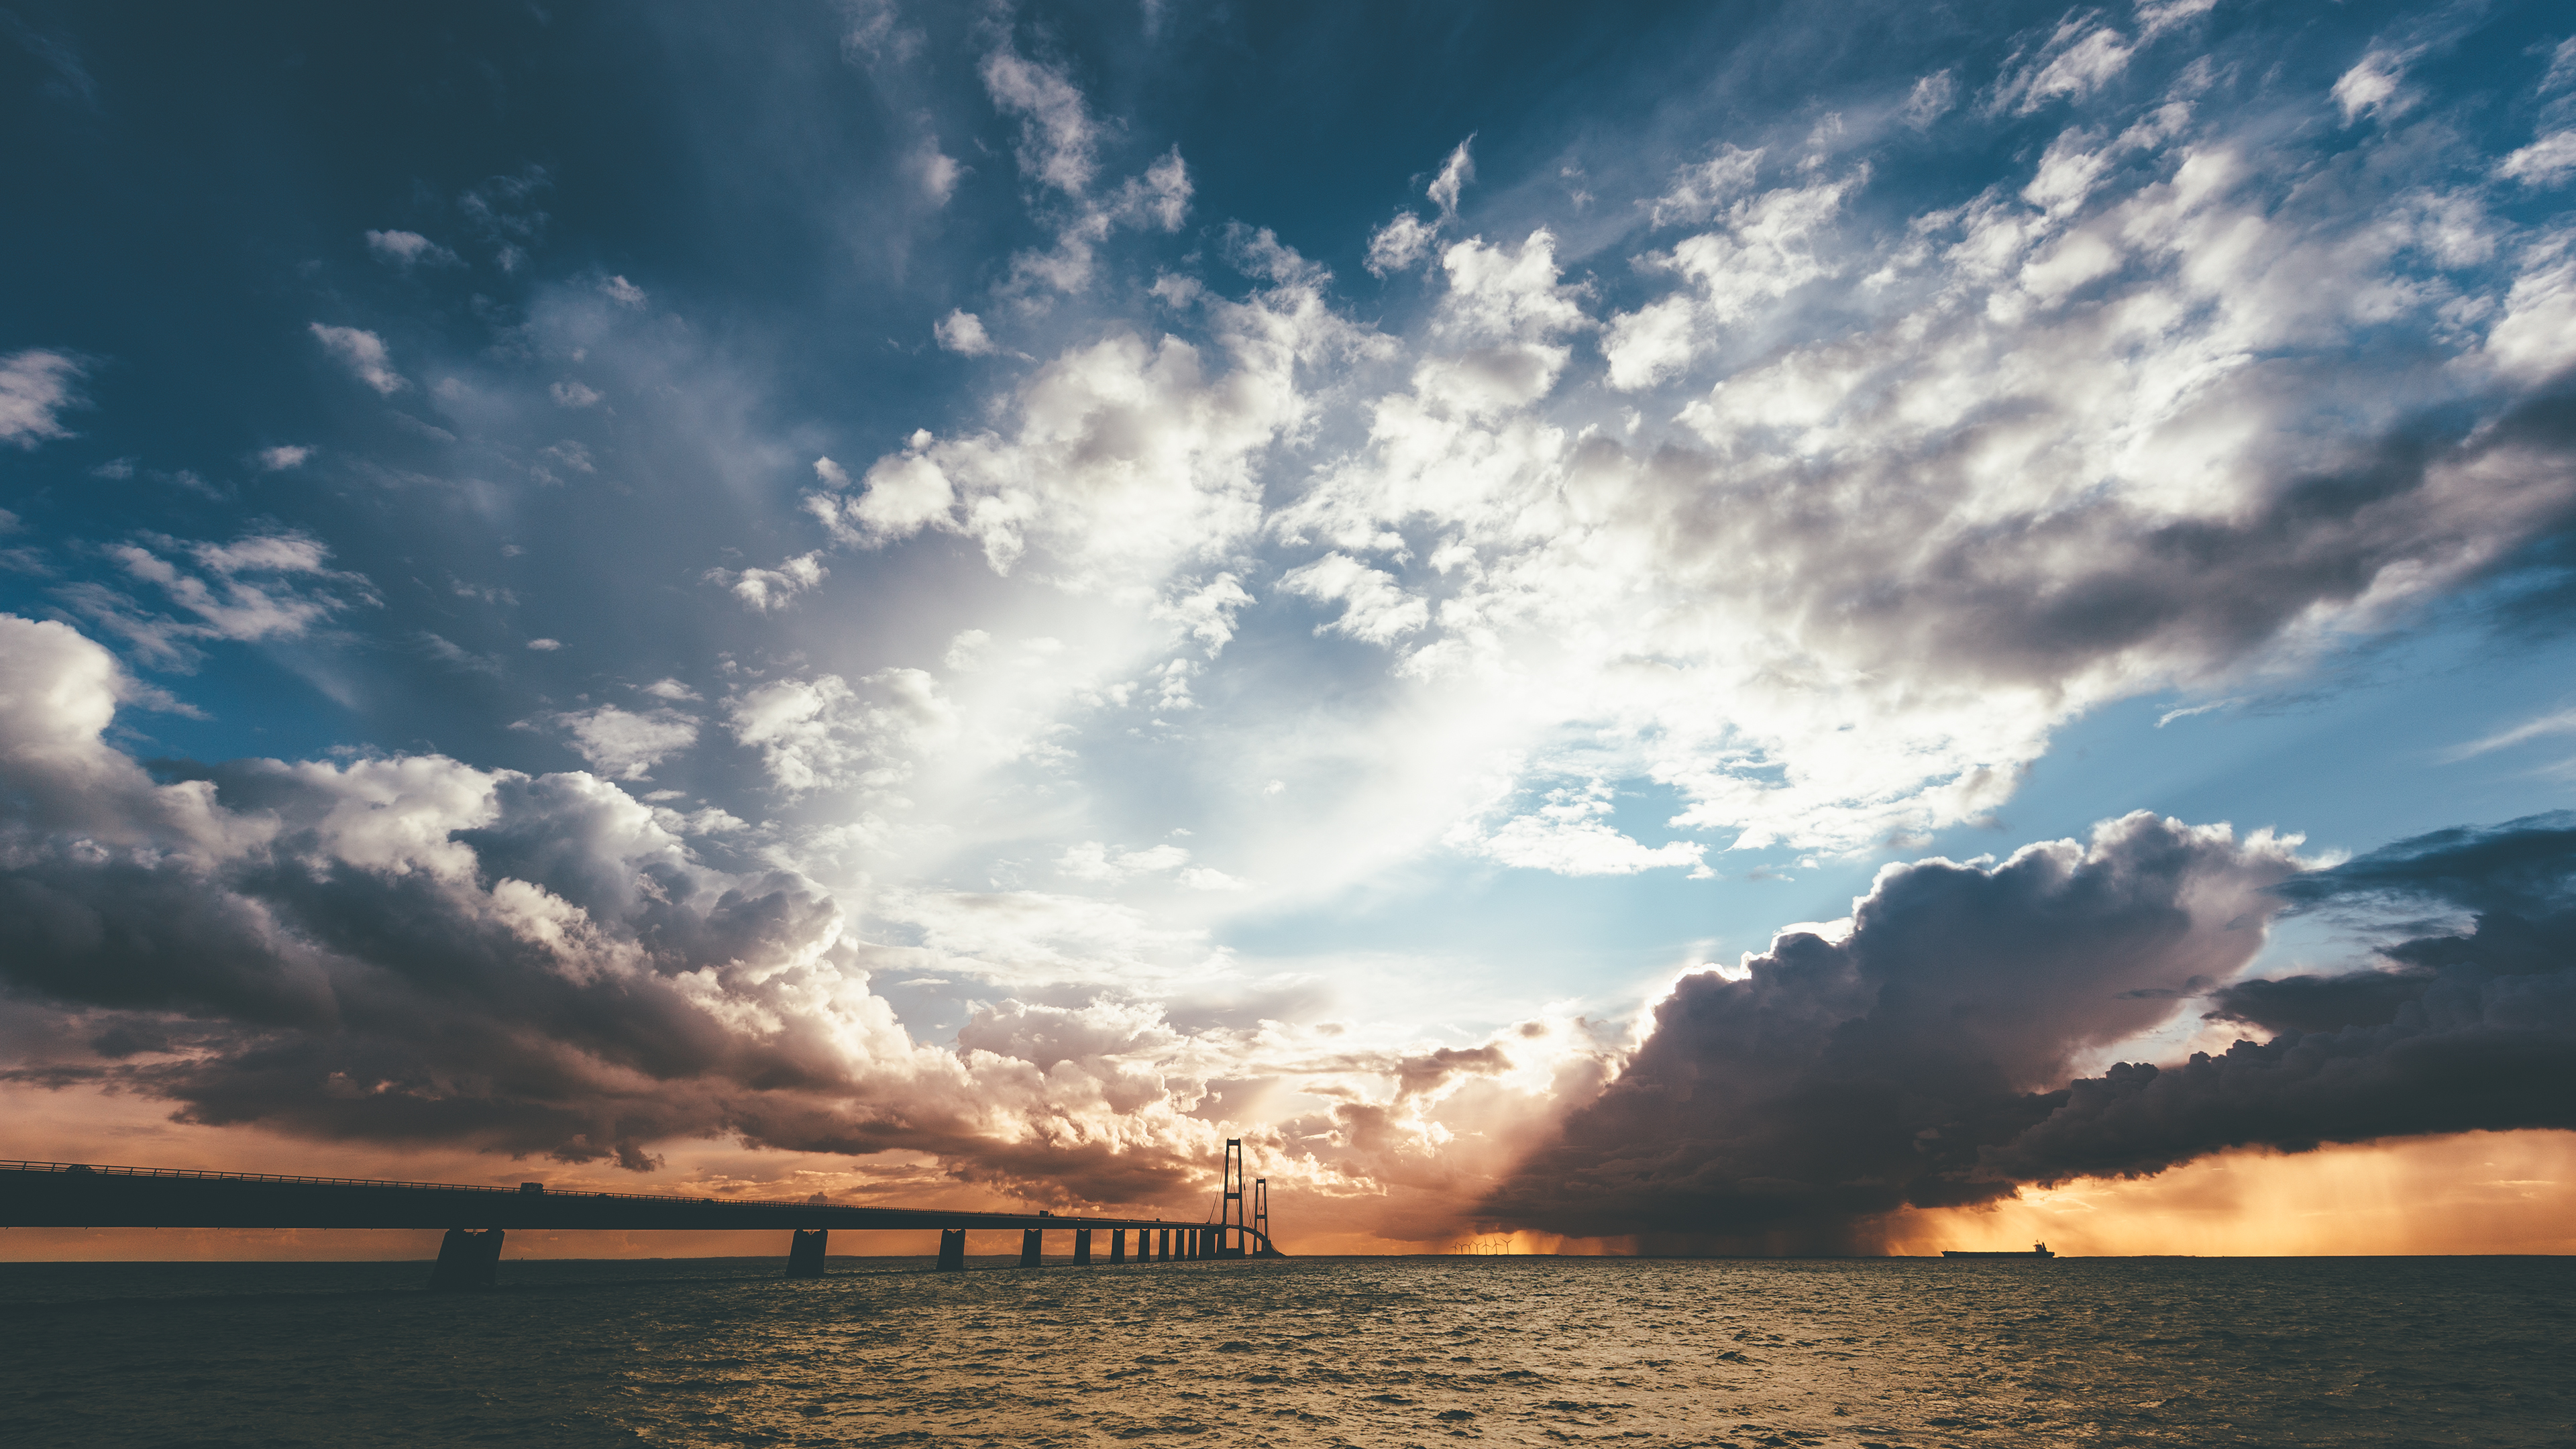 Bridge leading to the clouds wallpaper 39451 3840x2160